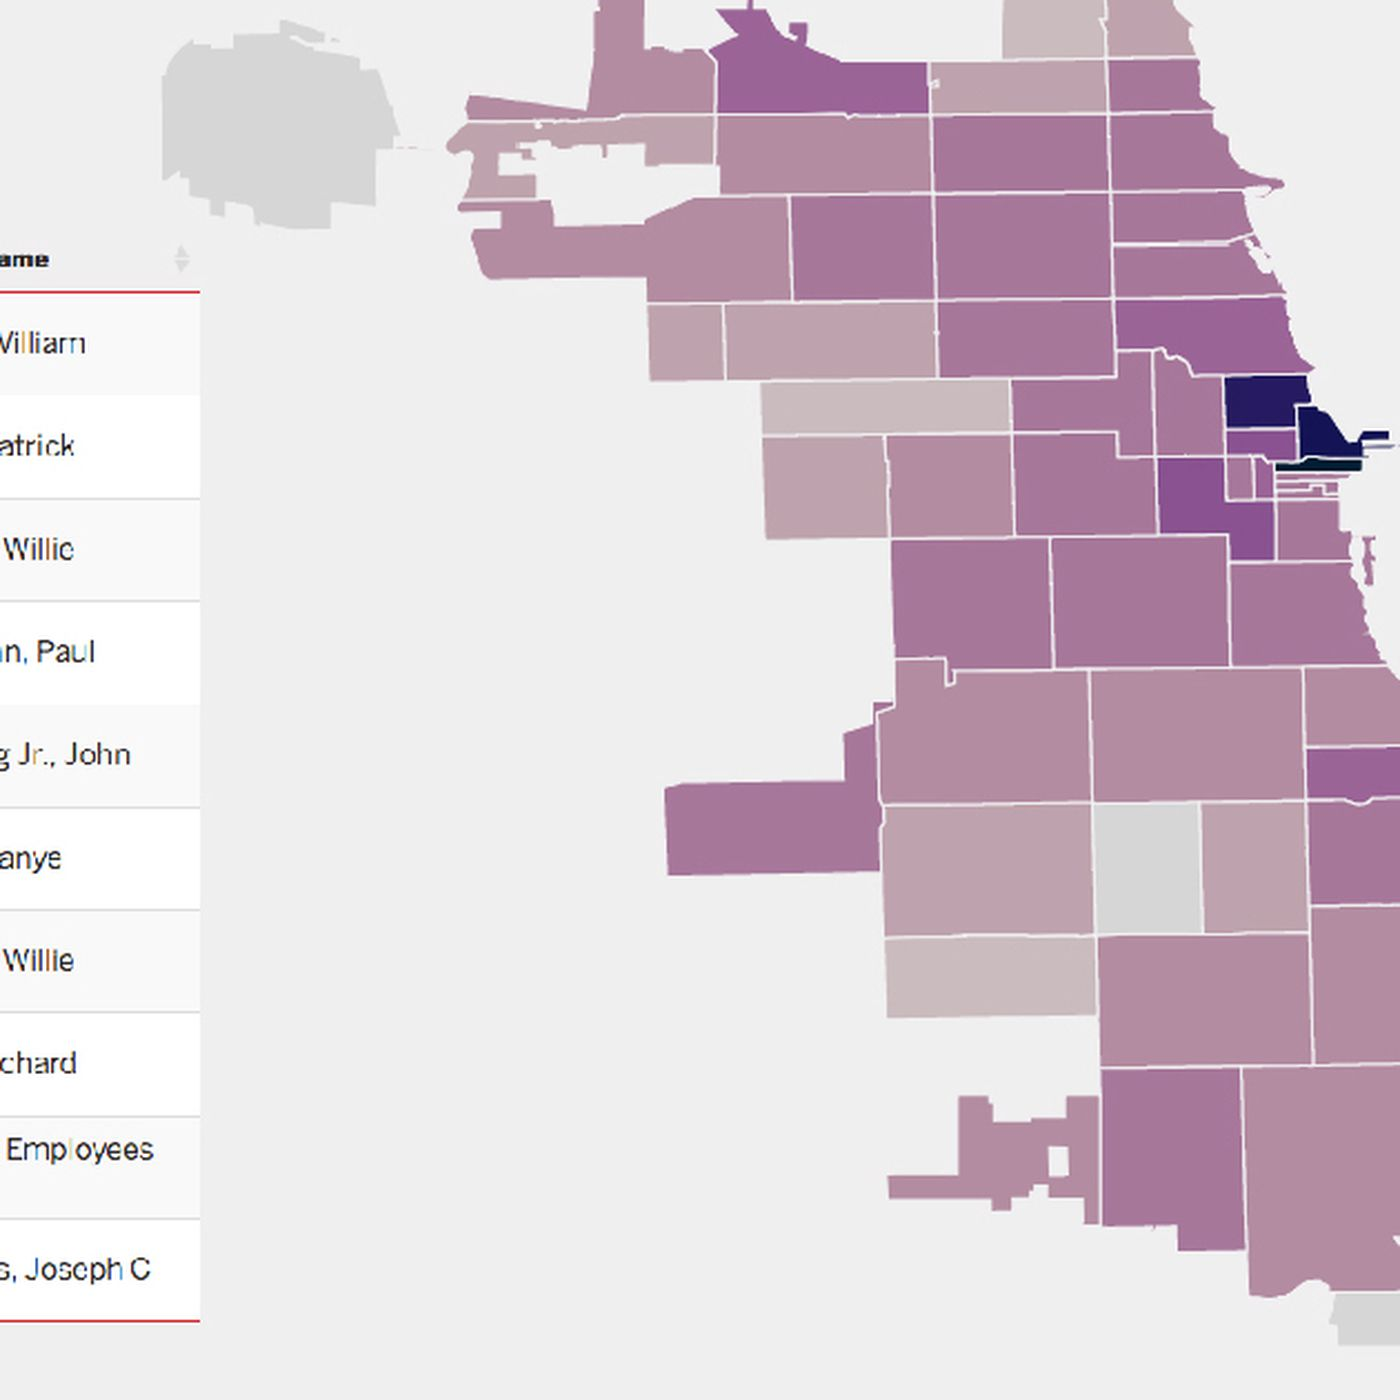 Chicago mayoral money-tracker: Who's getting how much in